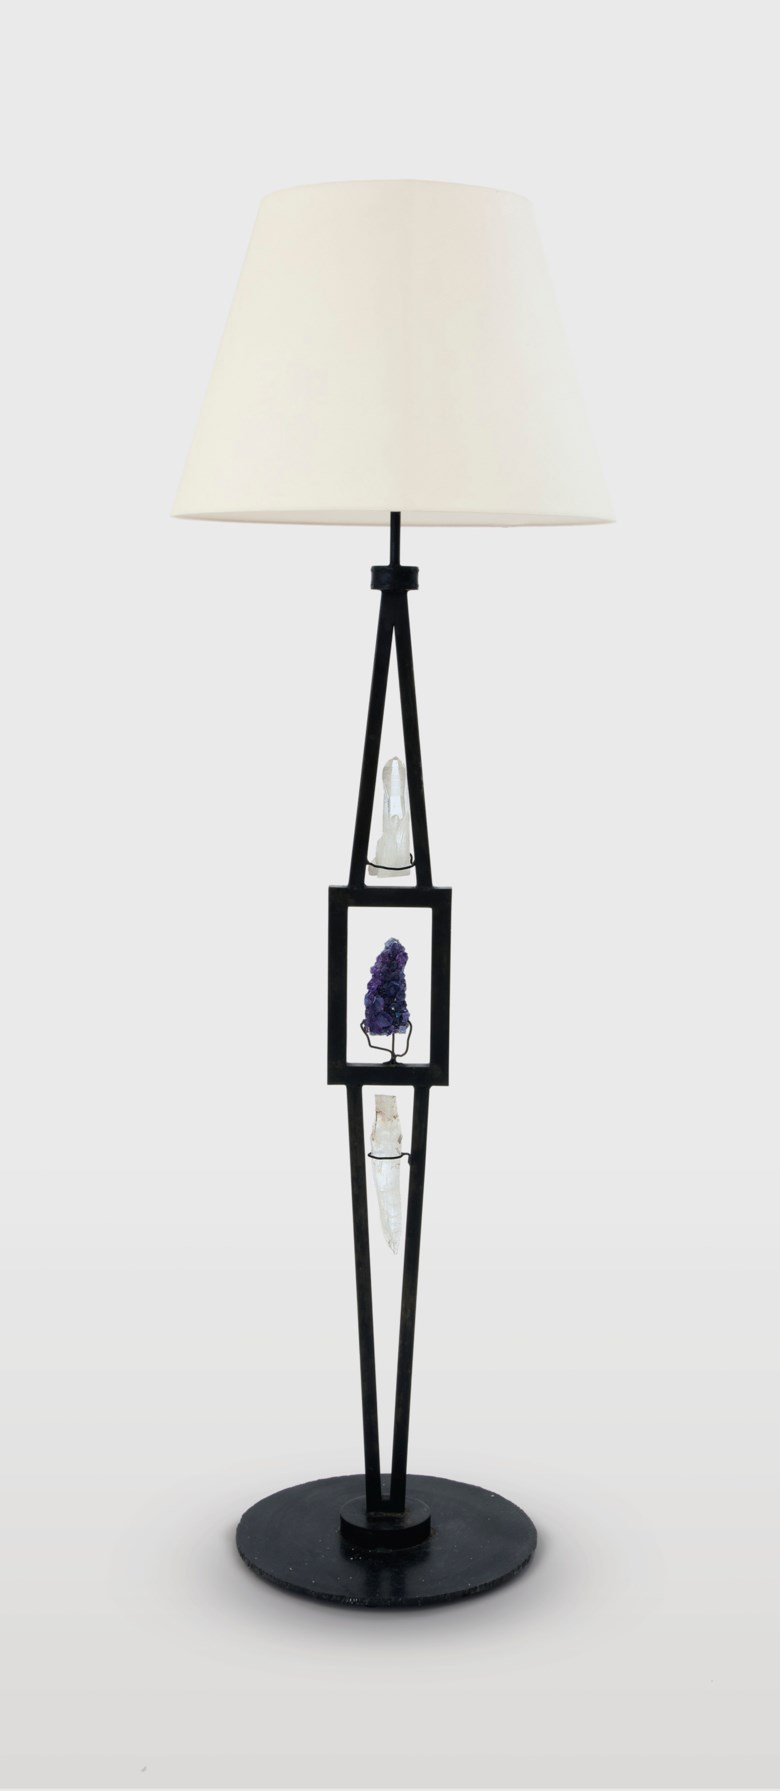 Marc du Plantier (1901-1975), a floor lamp, circa 1960. 67¾  in (172  cm) high overall. Estimate $70,000-100,000. Offered in Design on 20 June 2018 at Christie's in New York